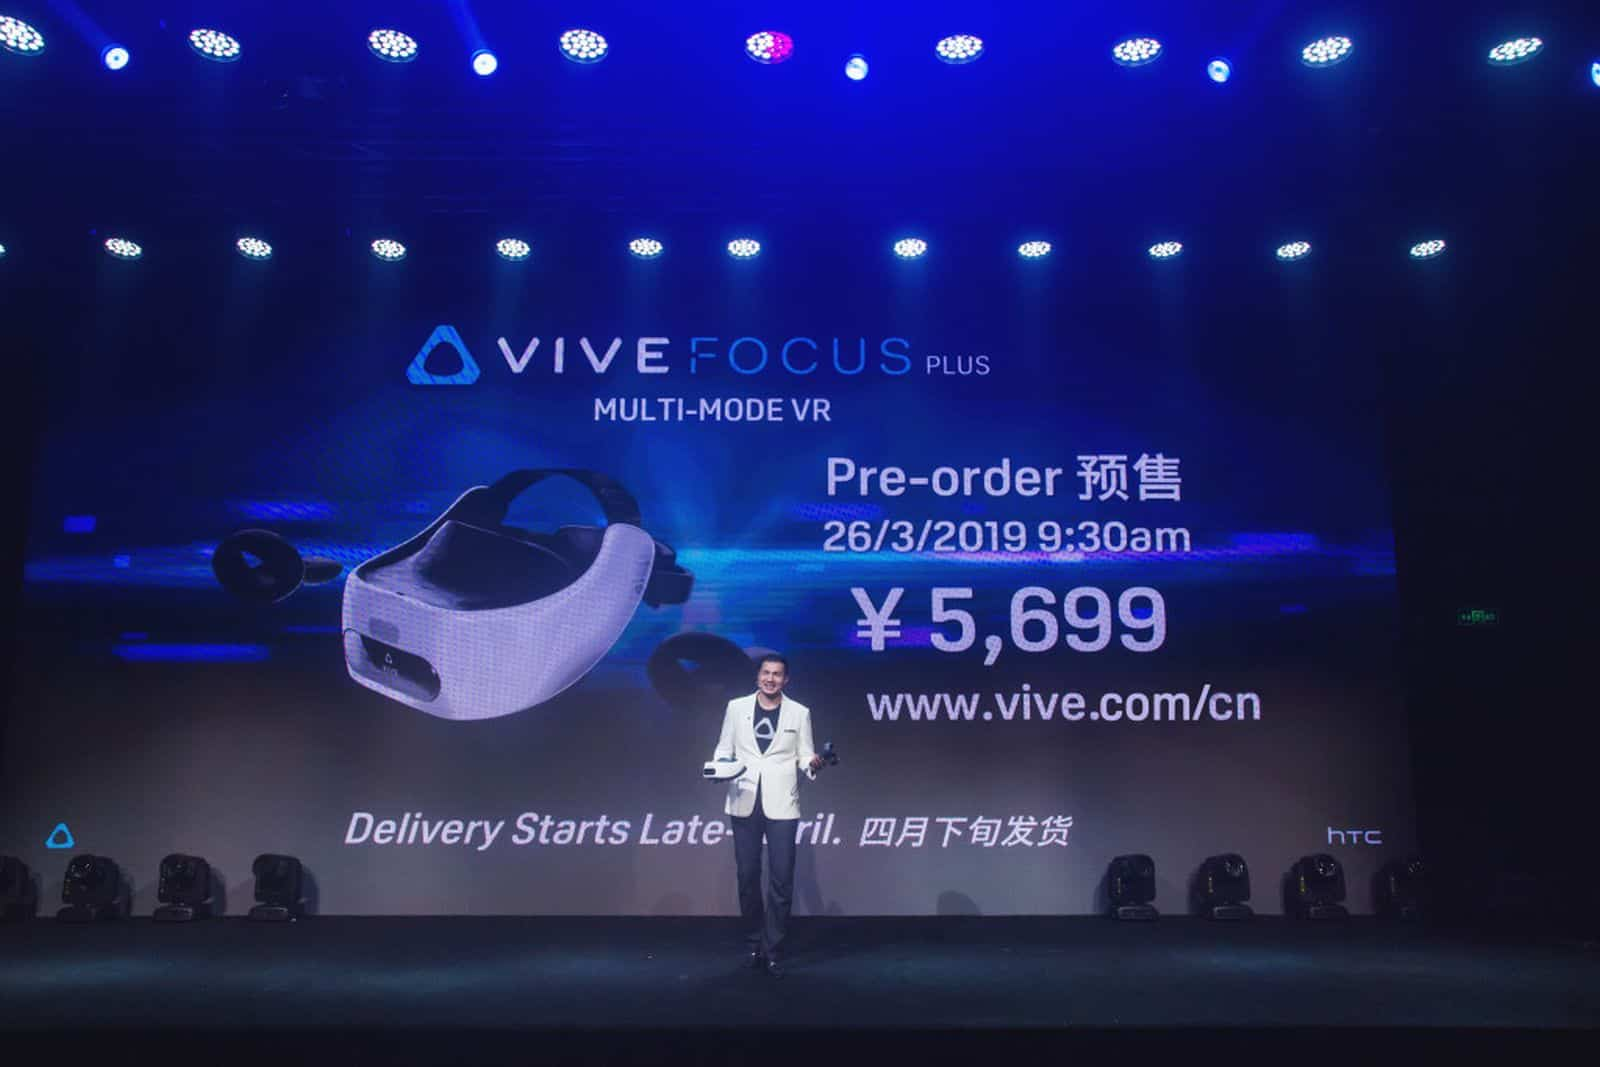 Vive Focus Plus 5